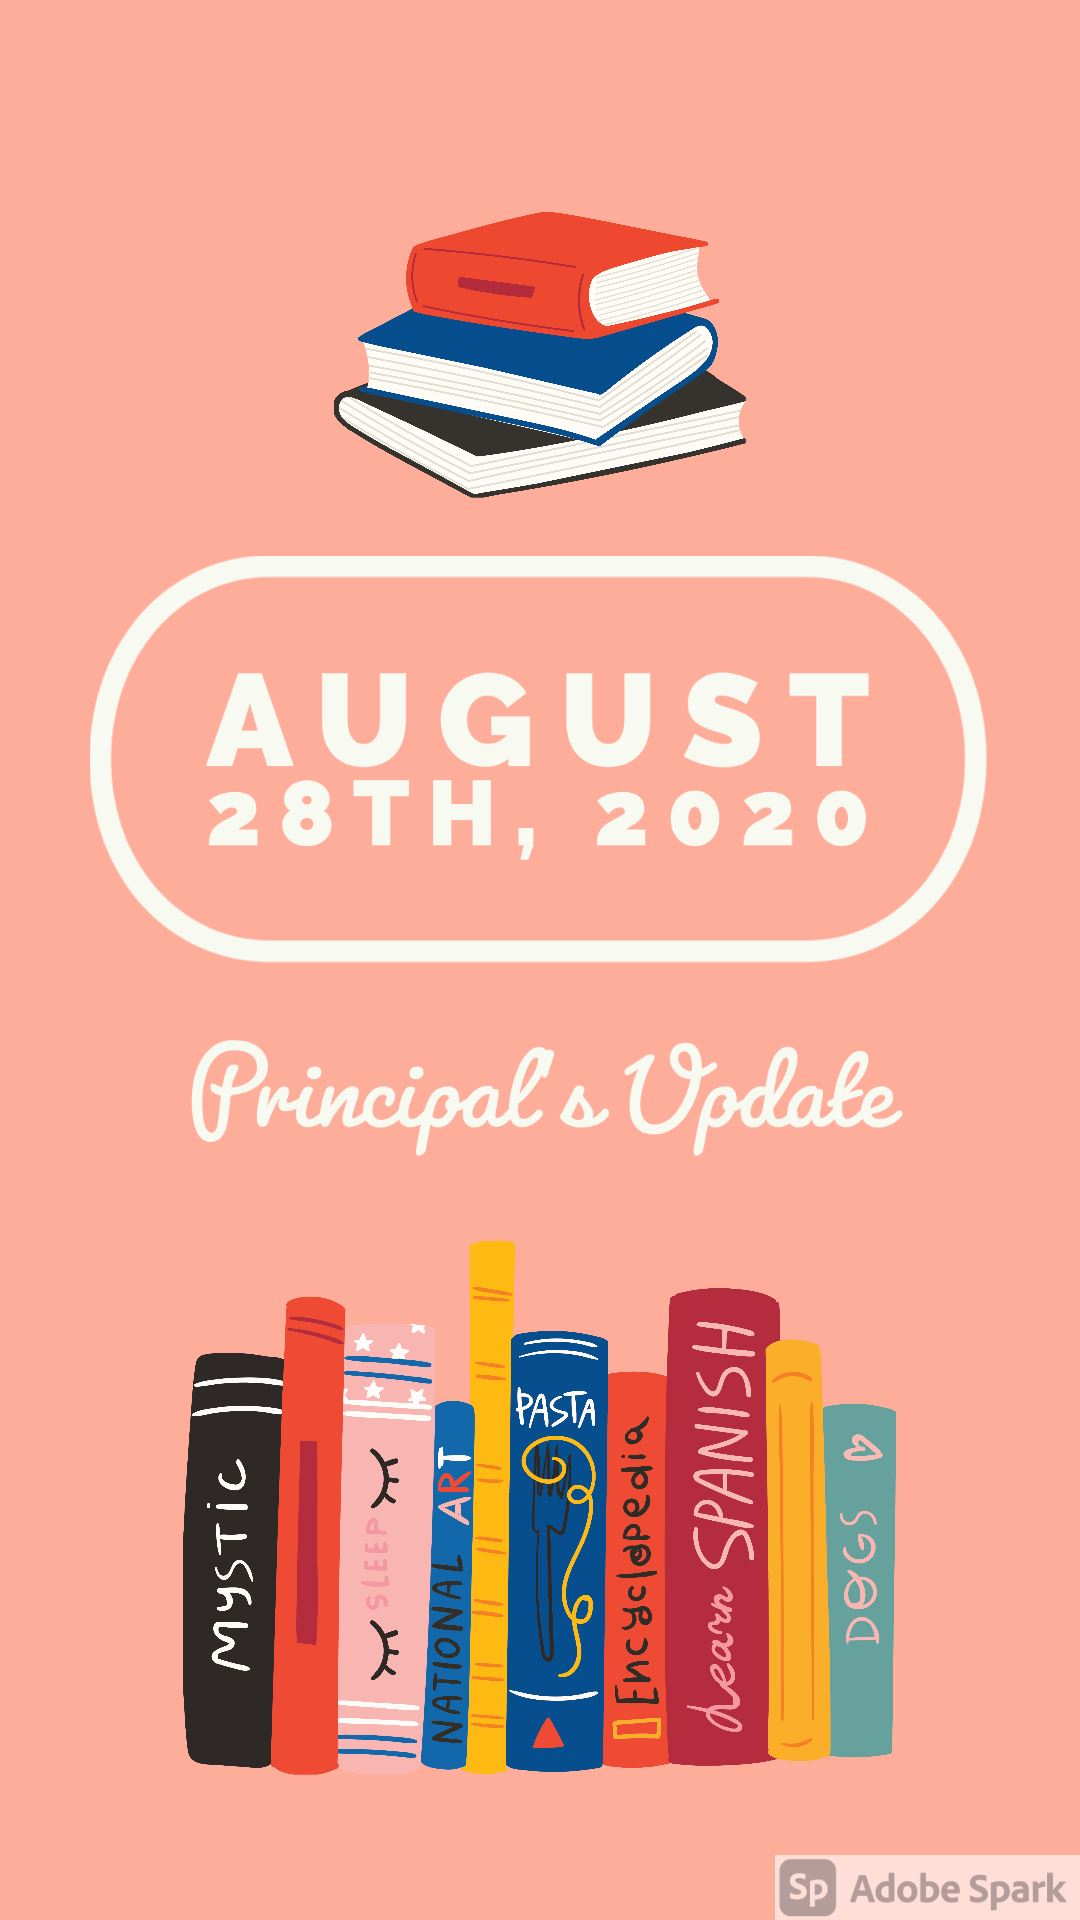 Principal's Update - August, 28th 2020